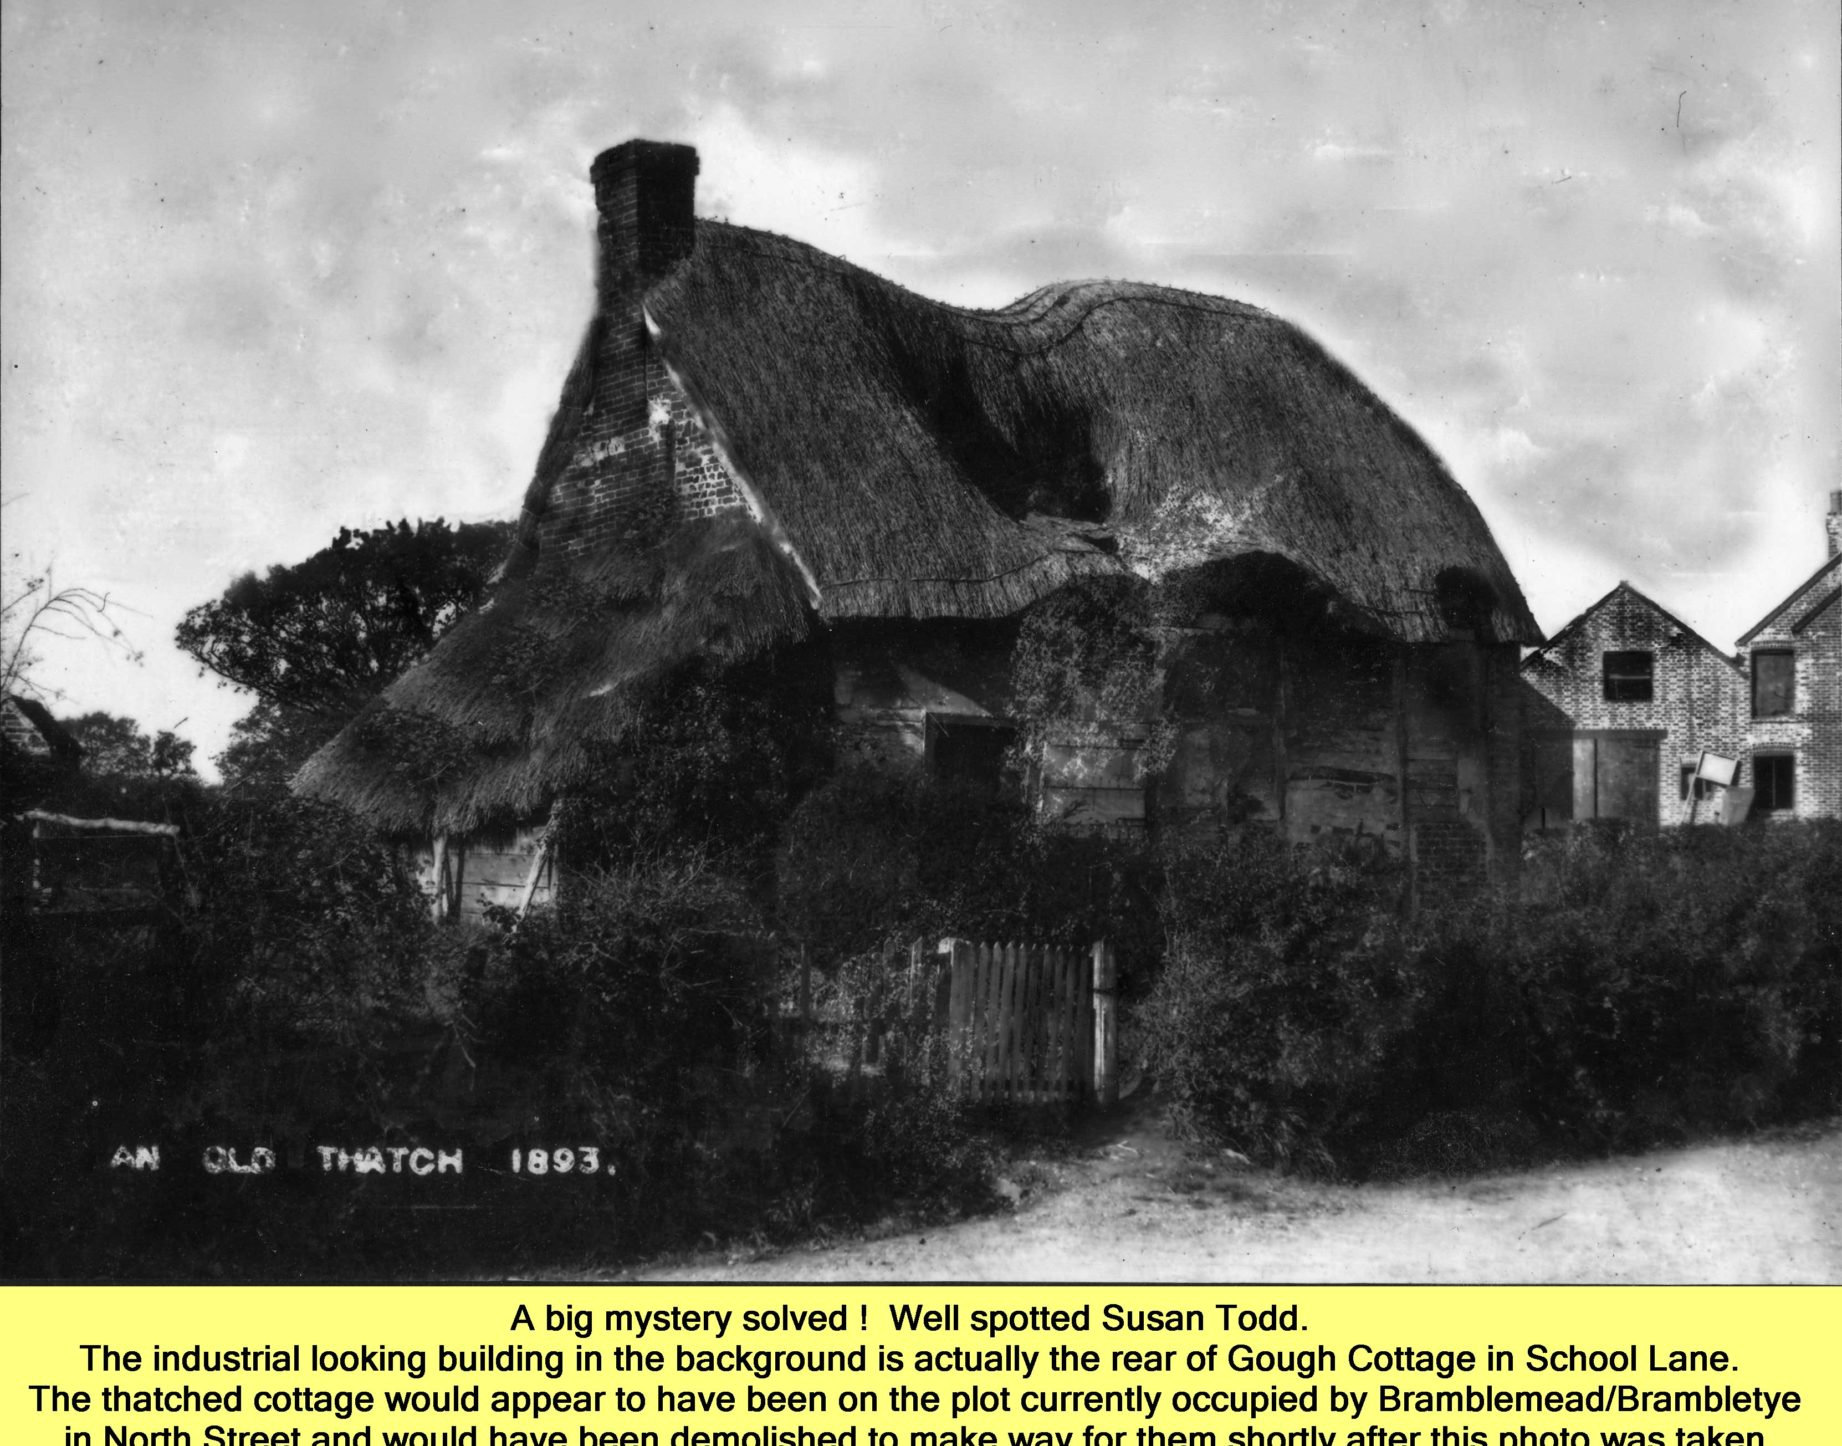 WESTBOURNE HISTORY PHOTO, NORTH STREET, THATCH, GOUGH COTTAGE, BRAMBLE, 1893